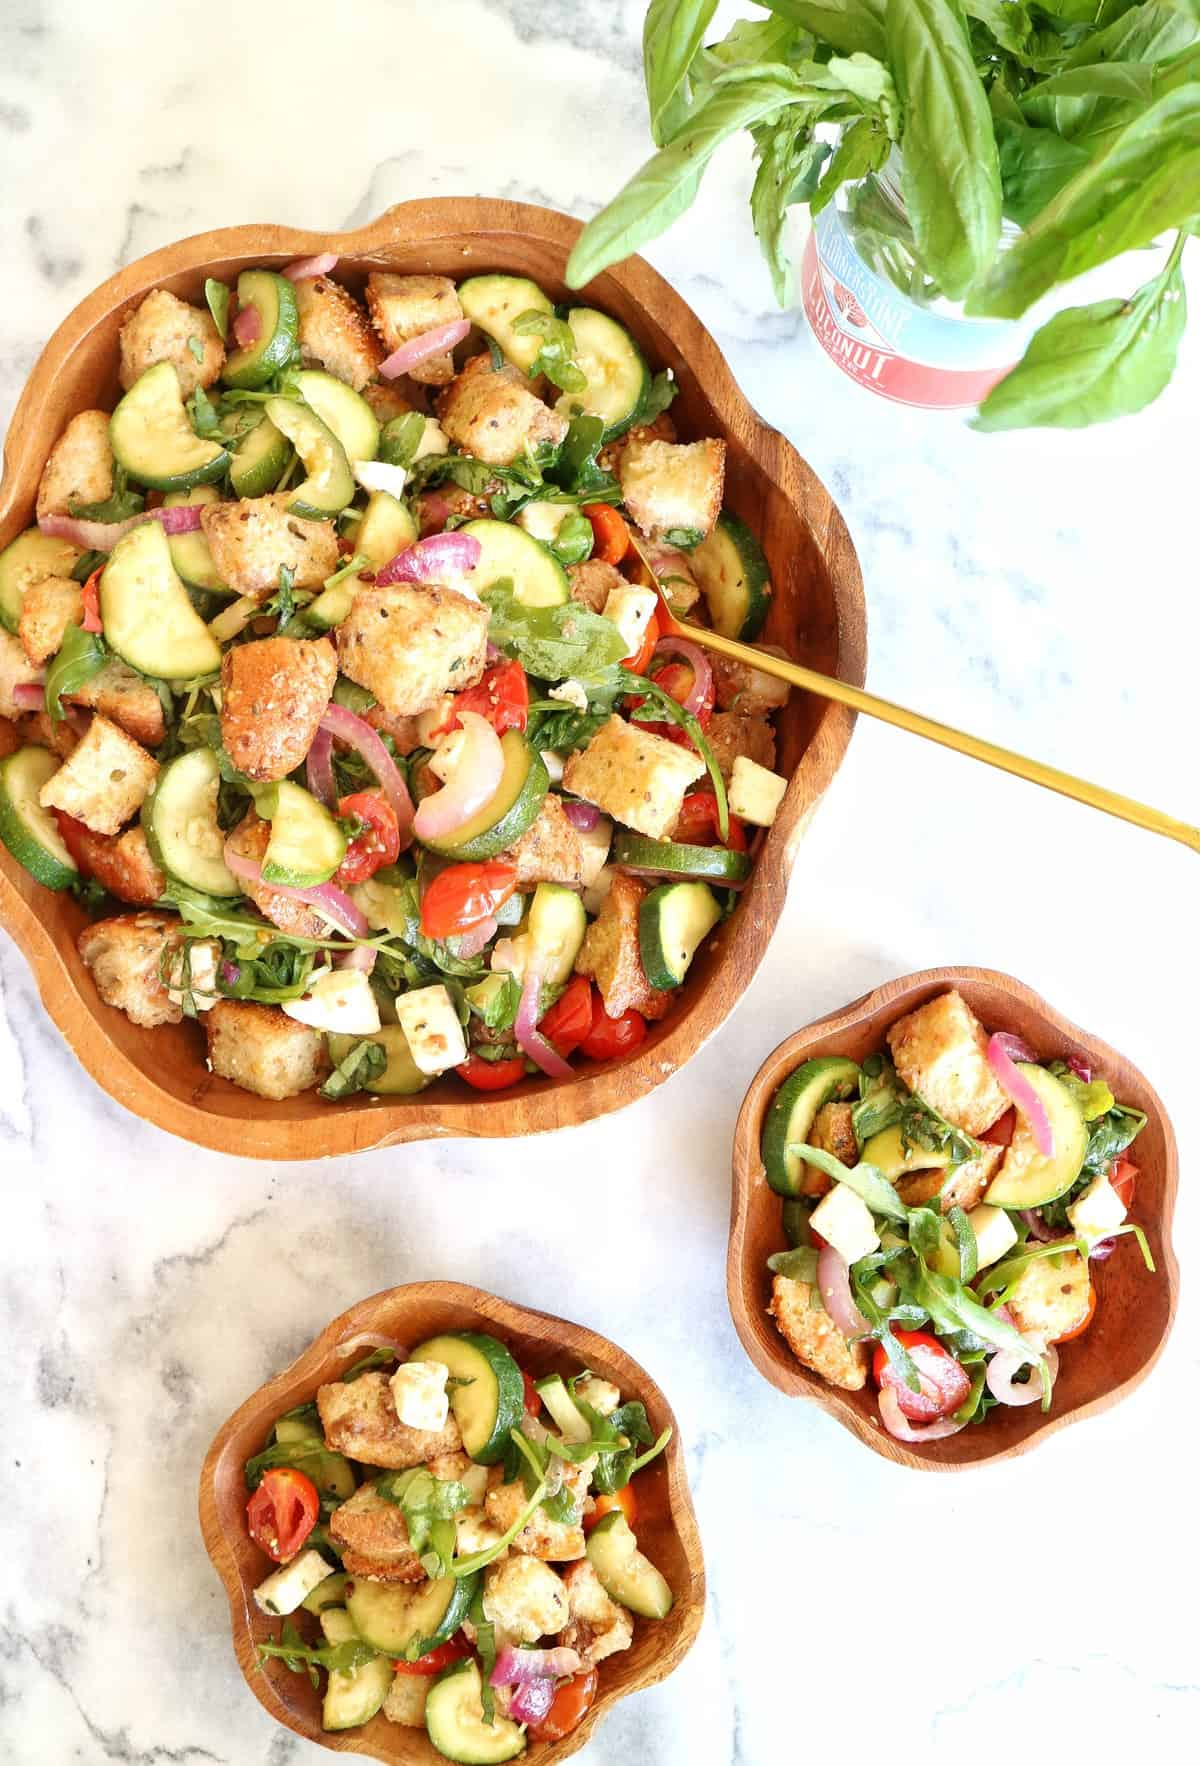 Large wooden bowl and two smaller bowls filled with roasted summer vegetable panzanella, on white marble table